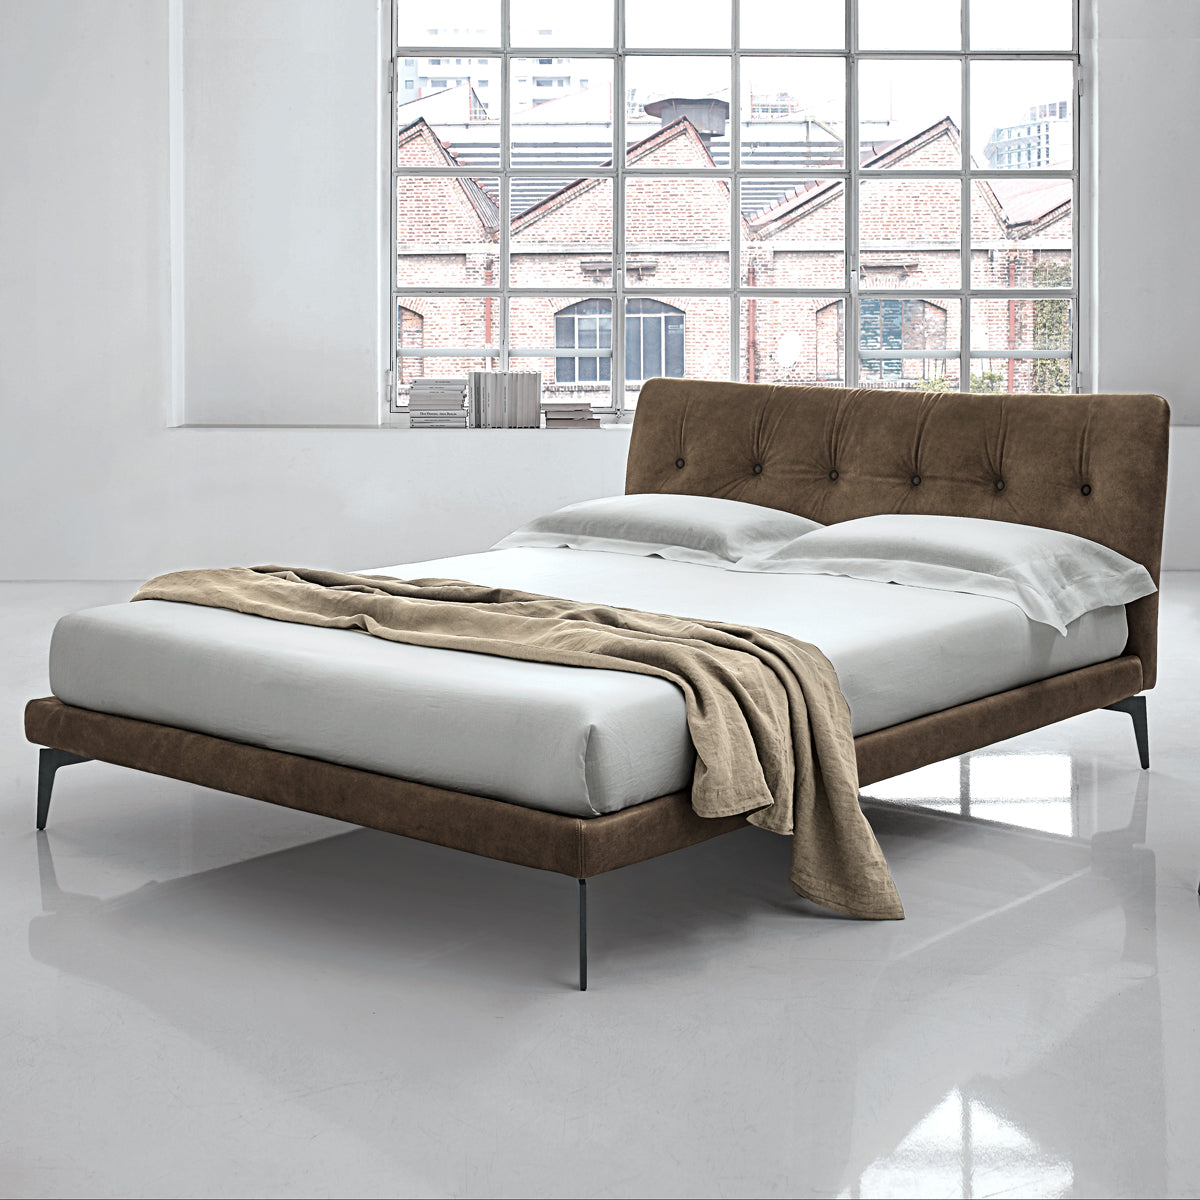 Shop Beds at Urban Avenue